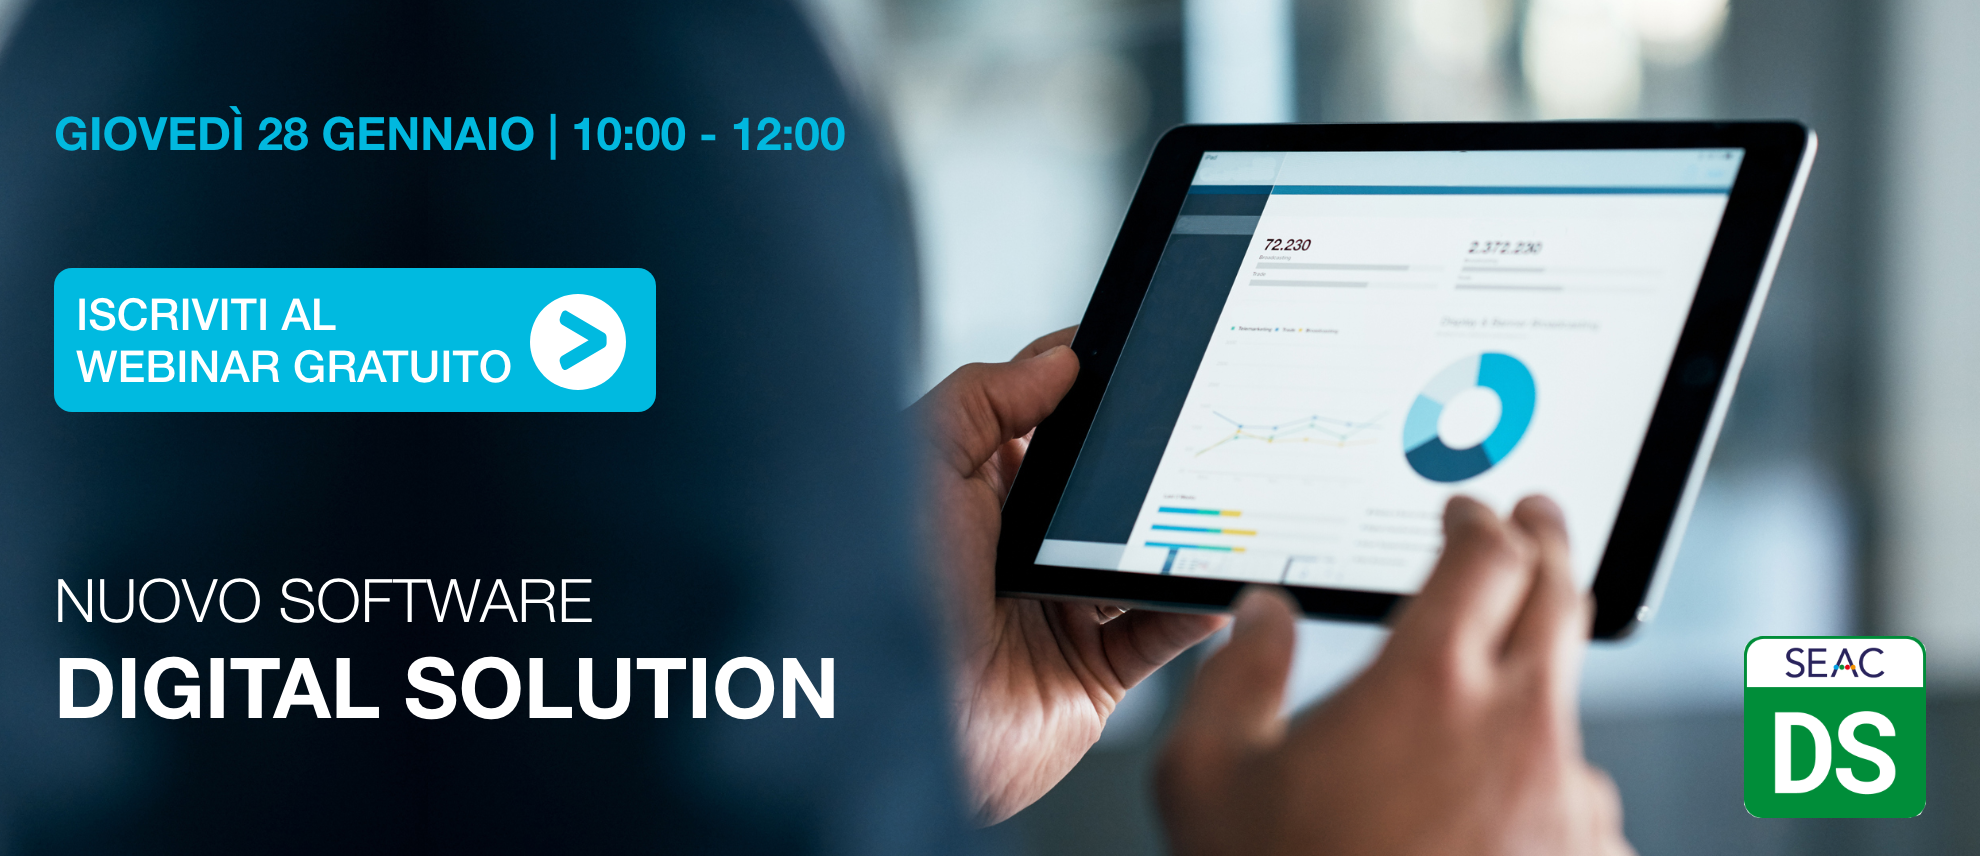 Digital Solution Webinar Gratuito